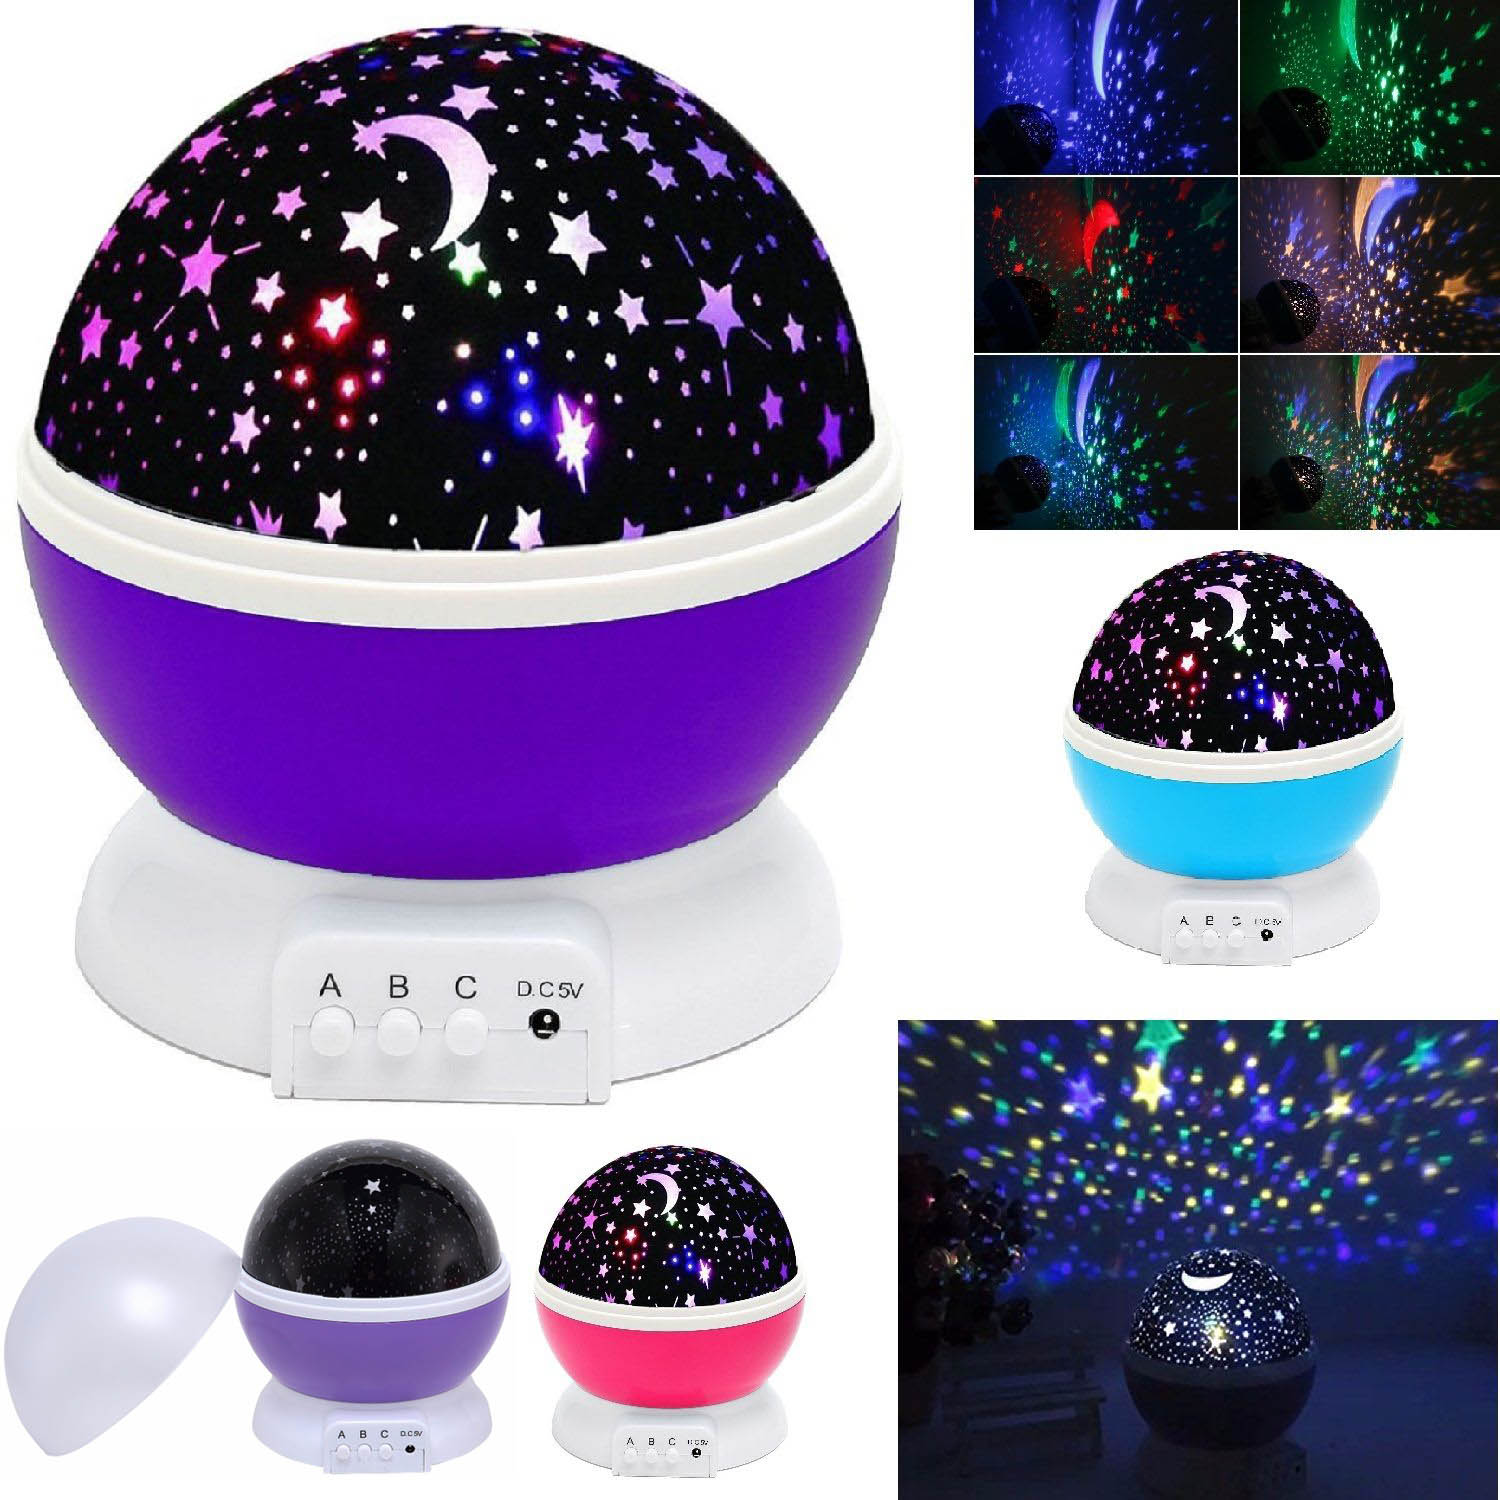 Constellation projector lamps lighting ceiling fans ebay constellation night light baby kids lamp moon star sky projector rotating cosmos mozeypictures